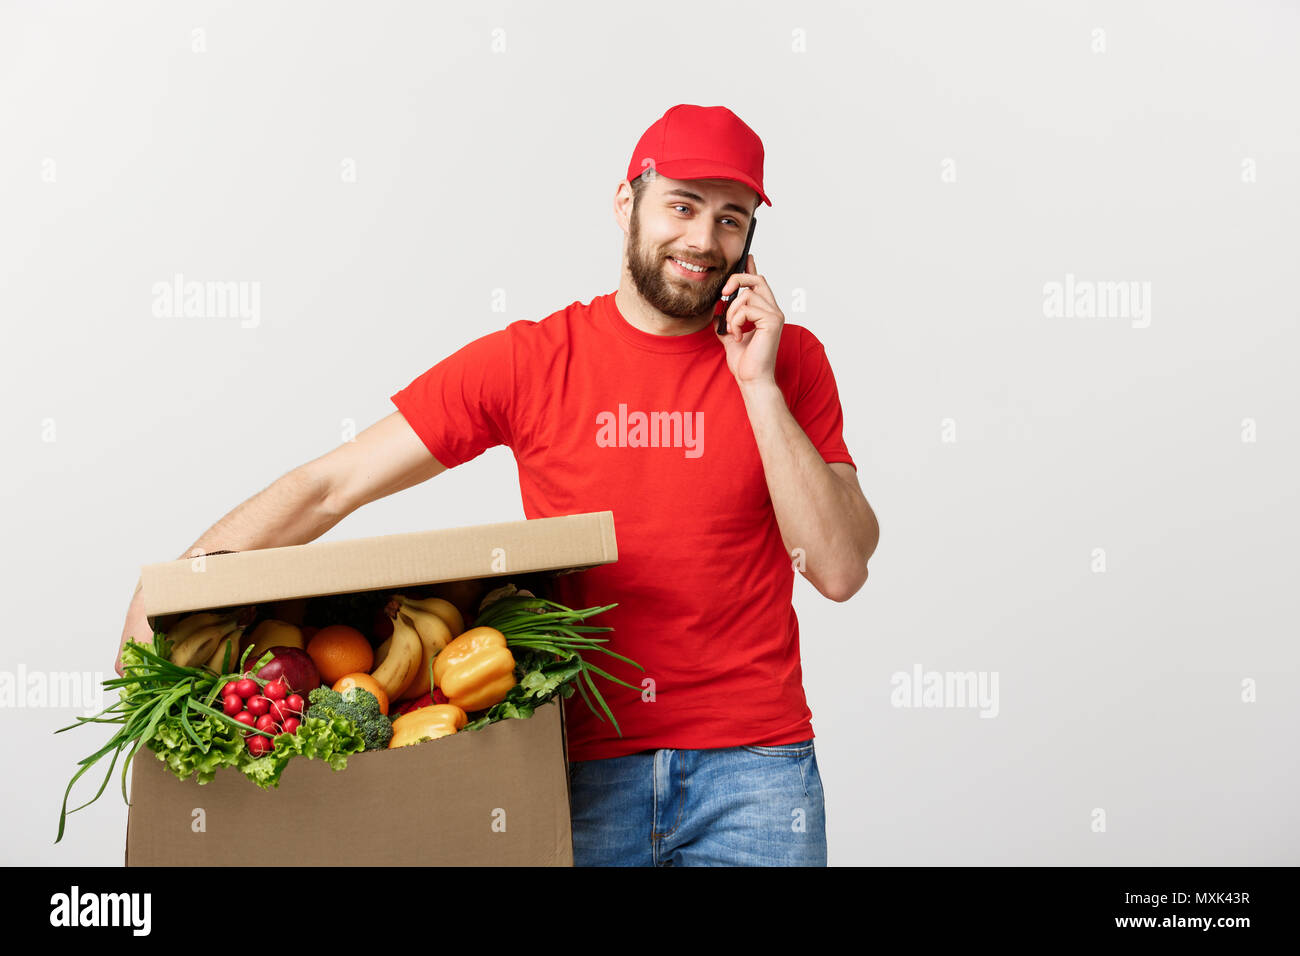 Delivery man holding paper box with food and making a call with mobile phone isolated over grey background. - Stock Image